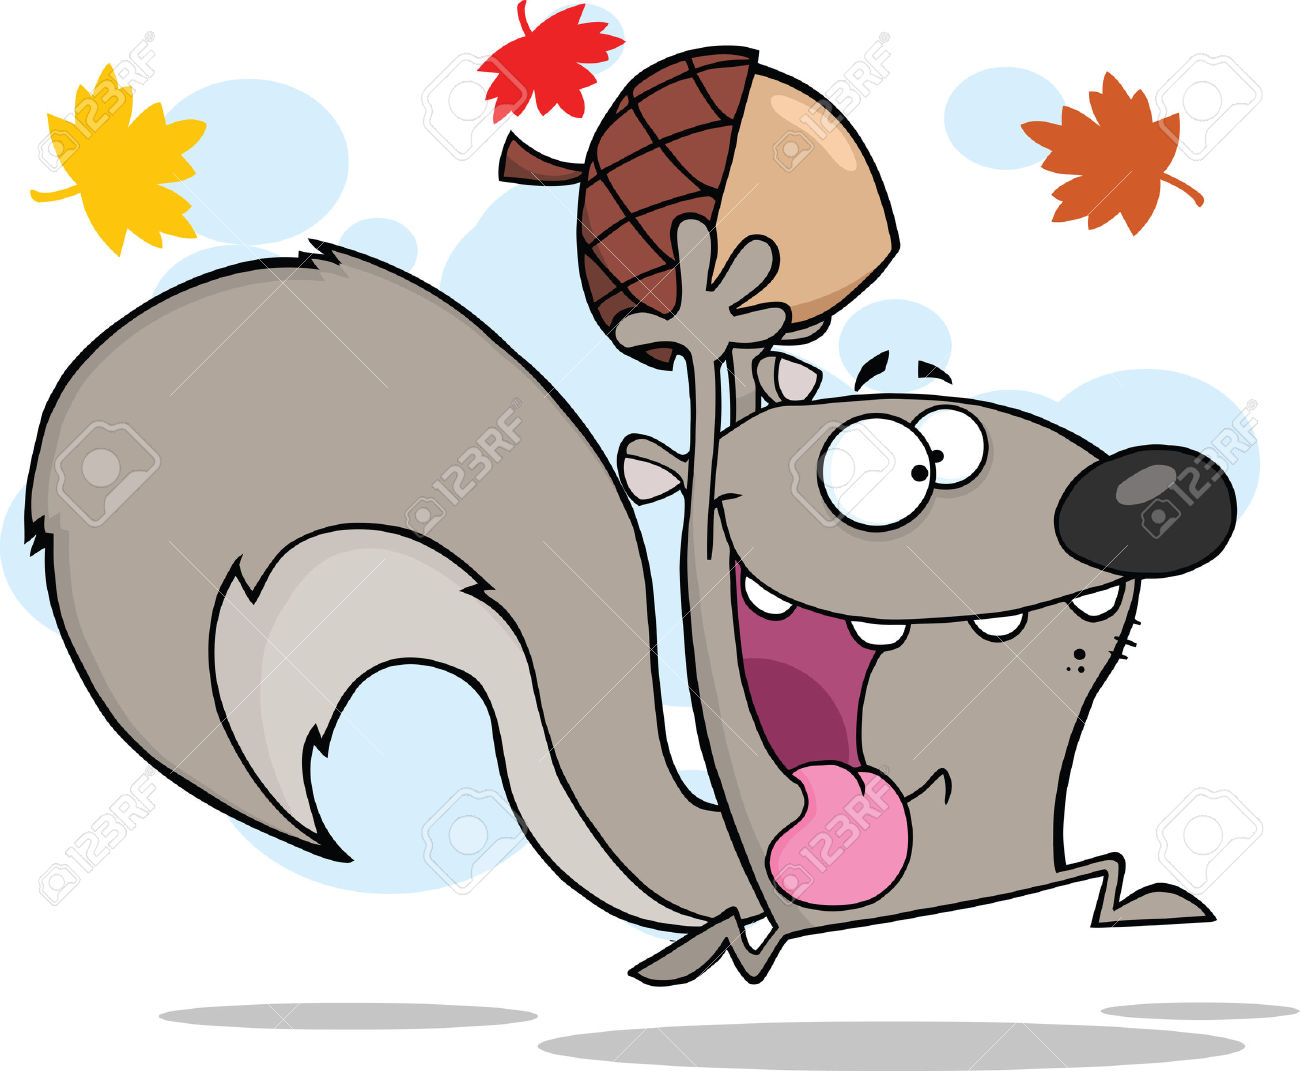 Grey squirrel clipart 20 free Cliparts | Download images ...